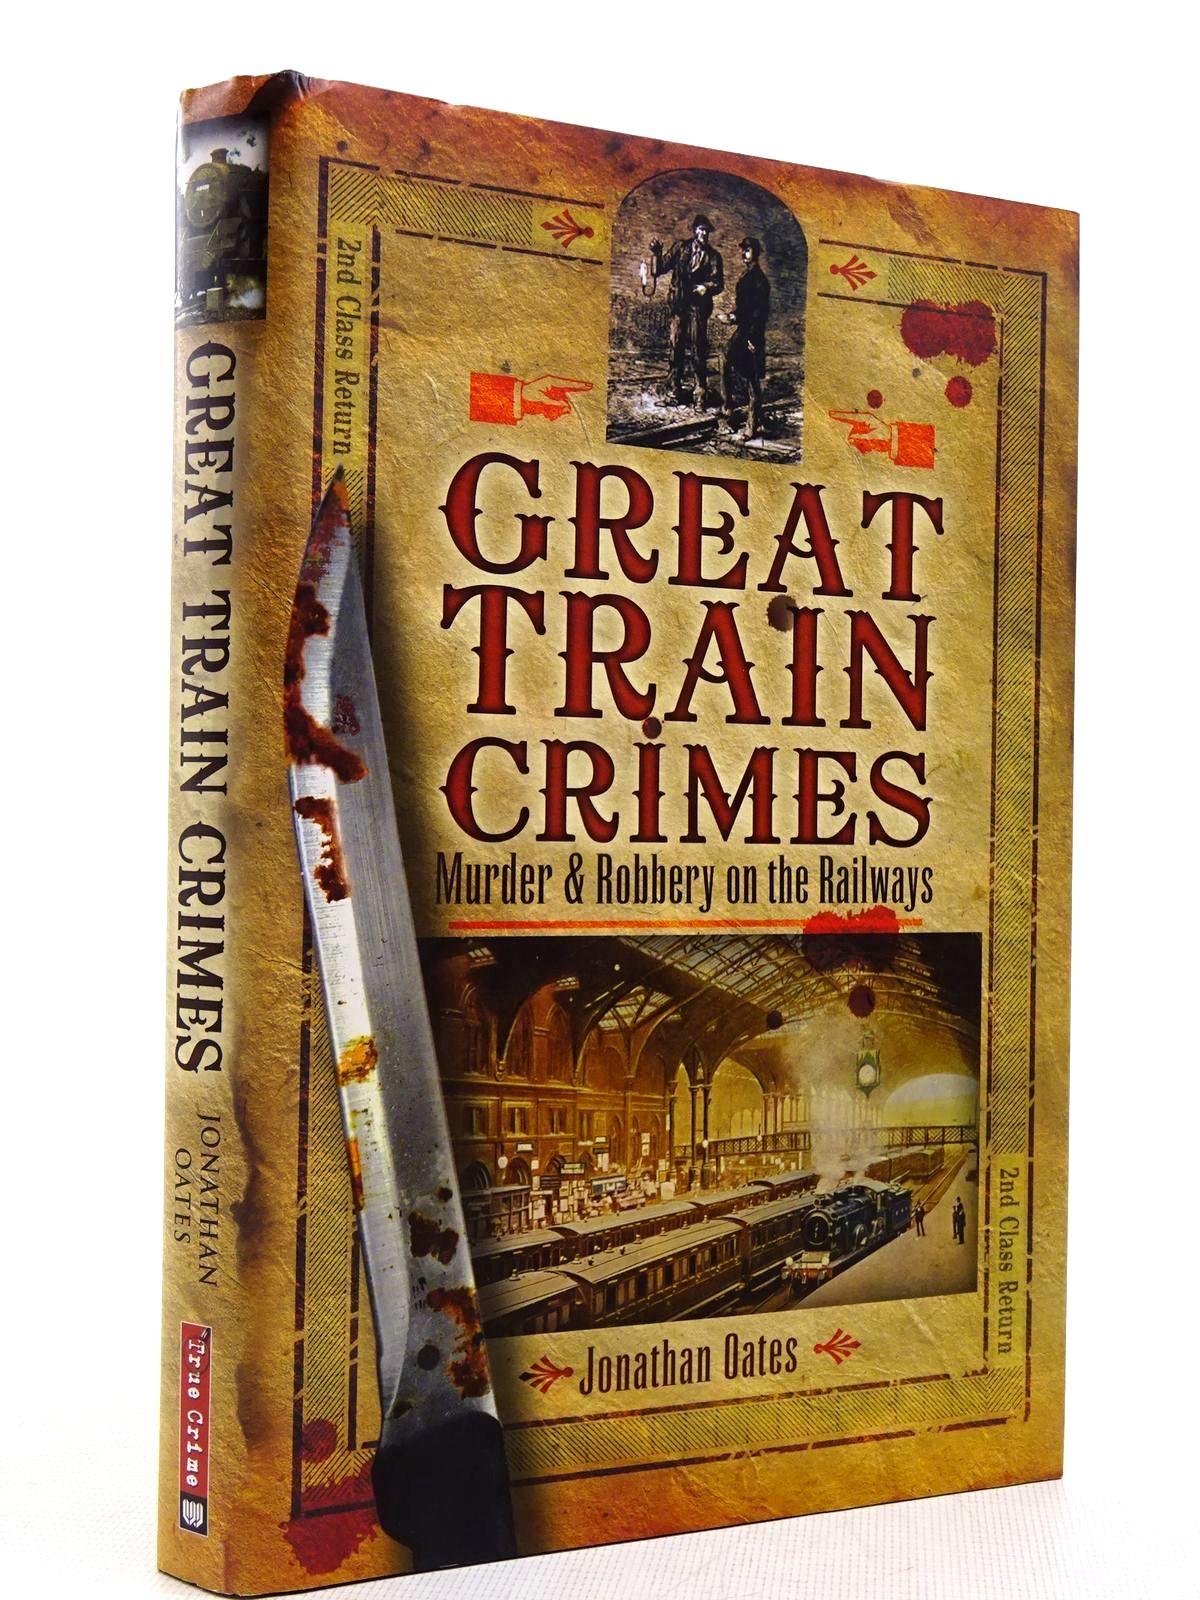 Photo of GREAT TRAIN CRIMES MURDER AND ROBBERY ON THE RAILWAYS written by Oates, Jonathan published by Wharncliffe Books (STOCK CODE: 2129126)  for sale by Stella & Rose's Books